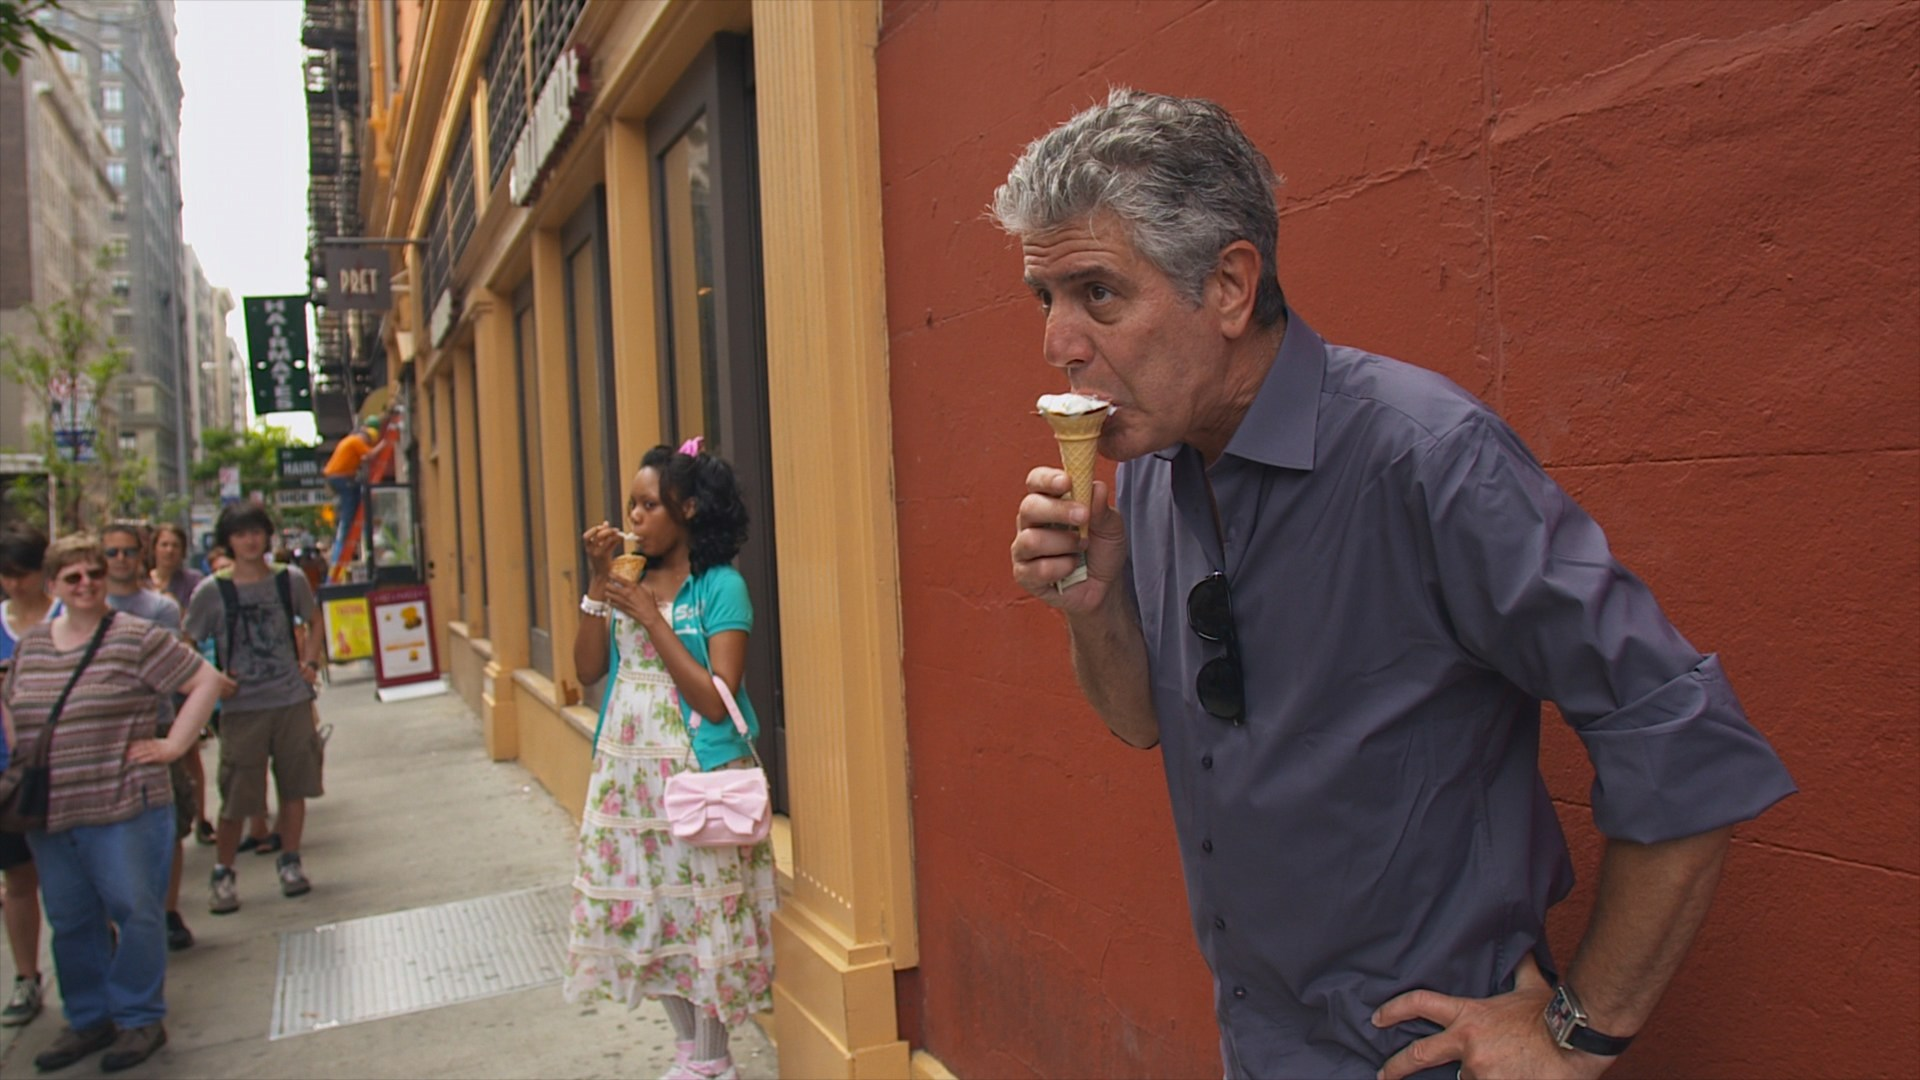 Roadrunner: A Film About Anthony Bourdain Trailer: Celebrating an Icon's Legacy